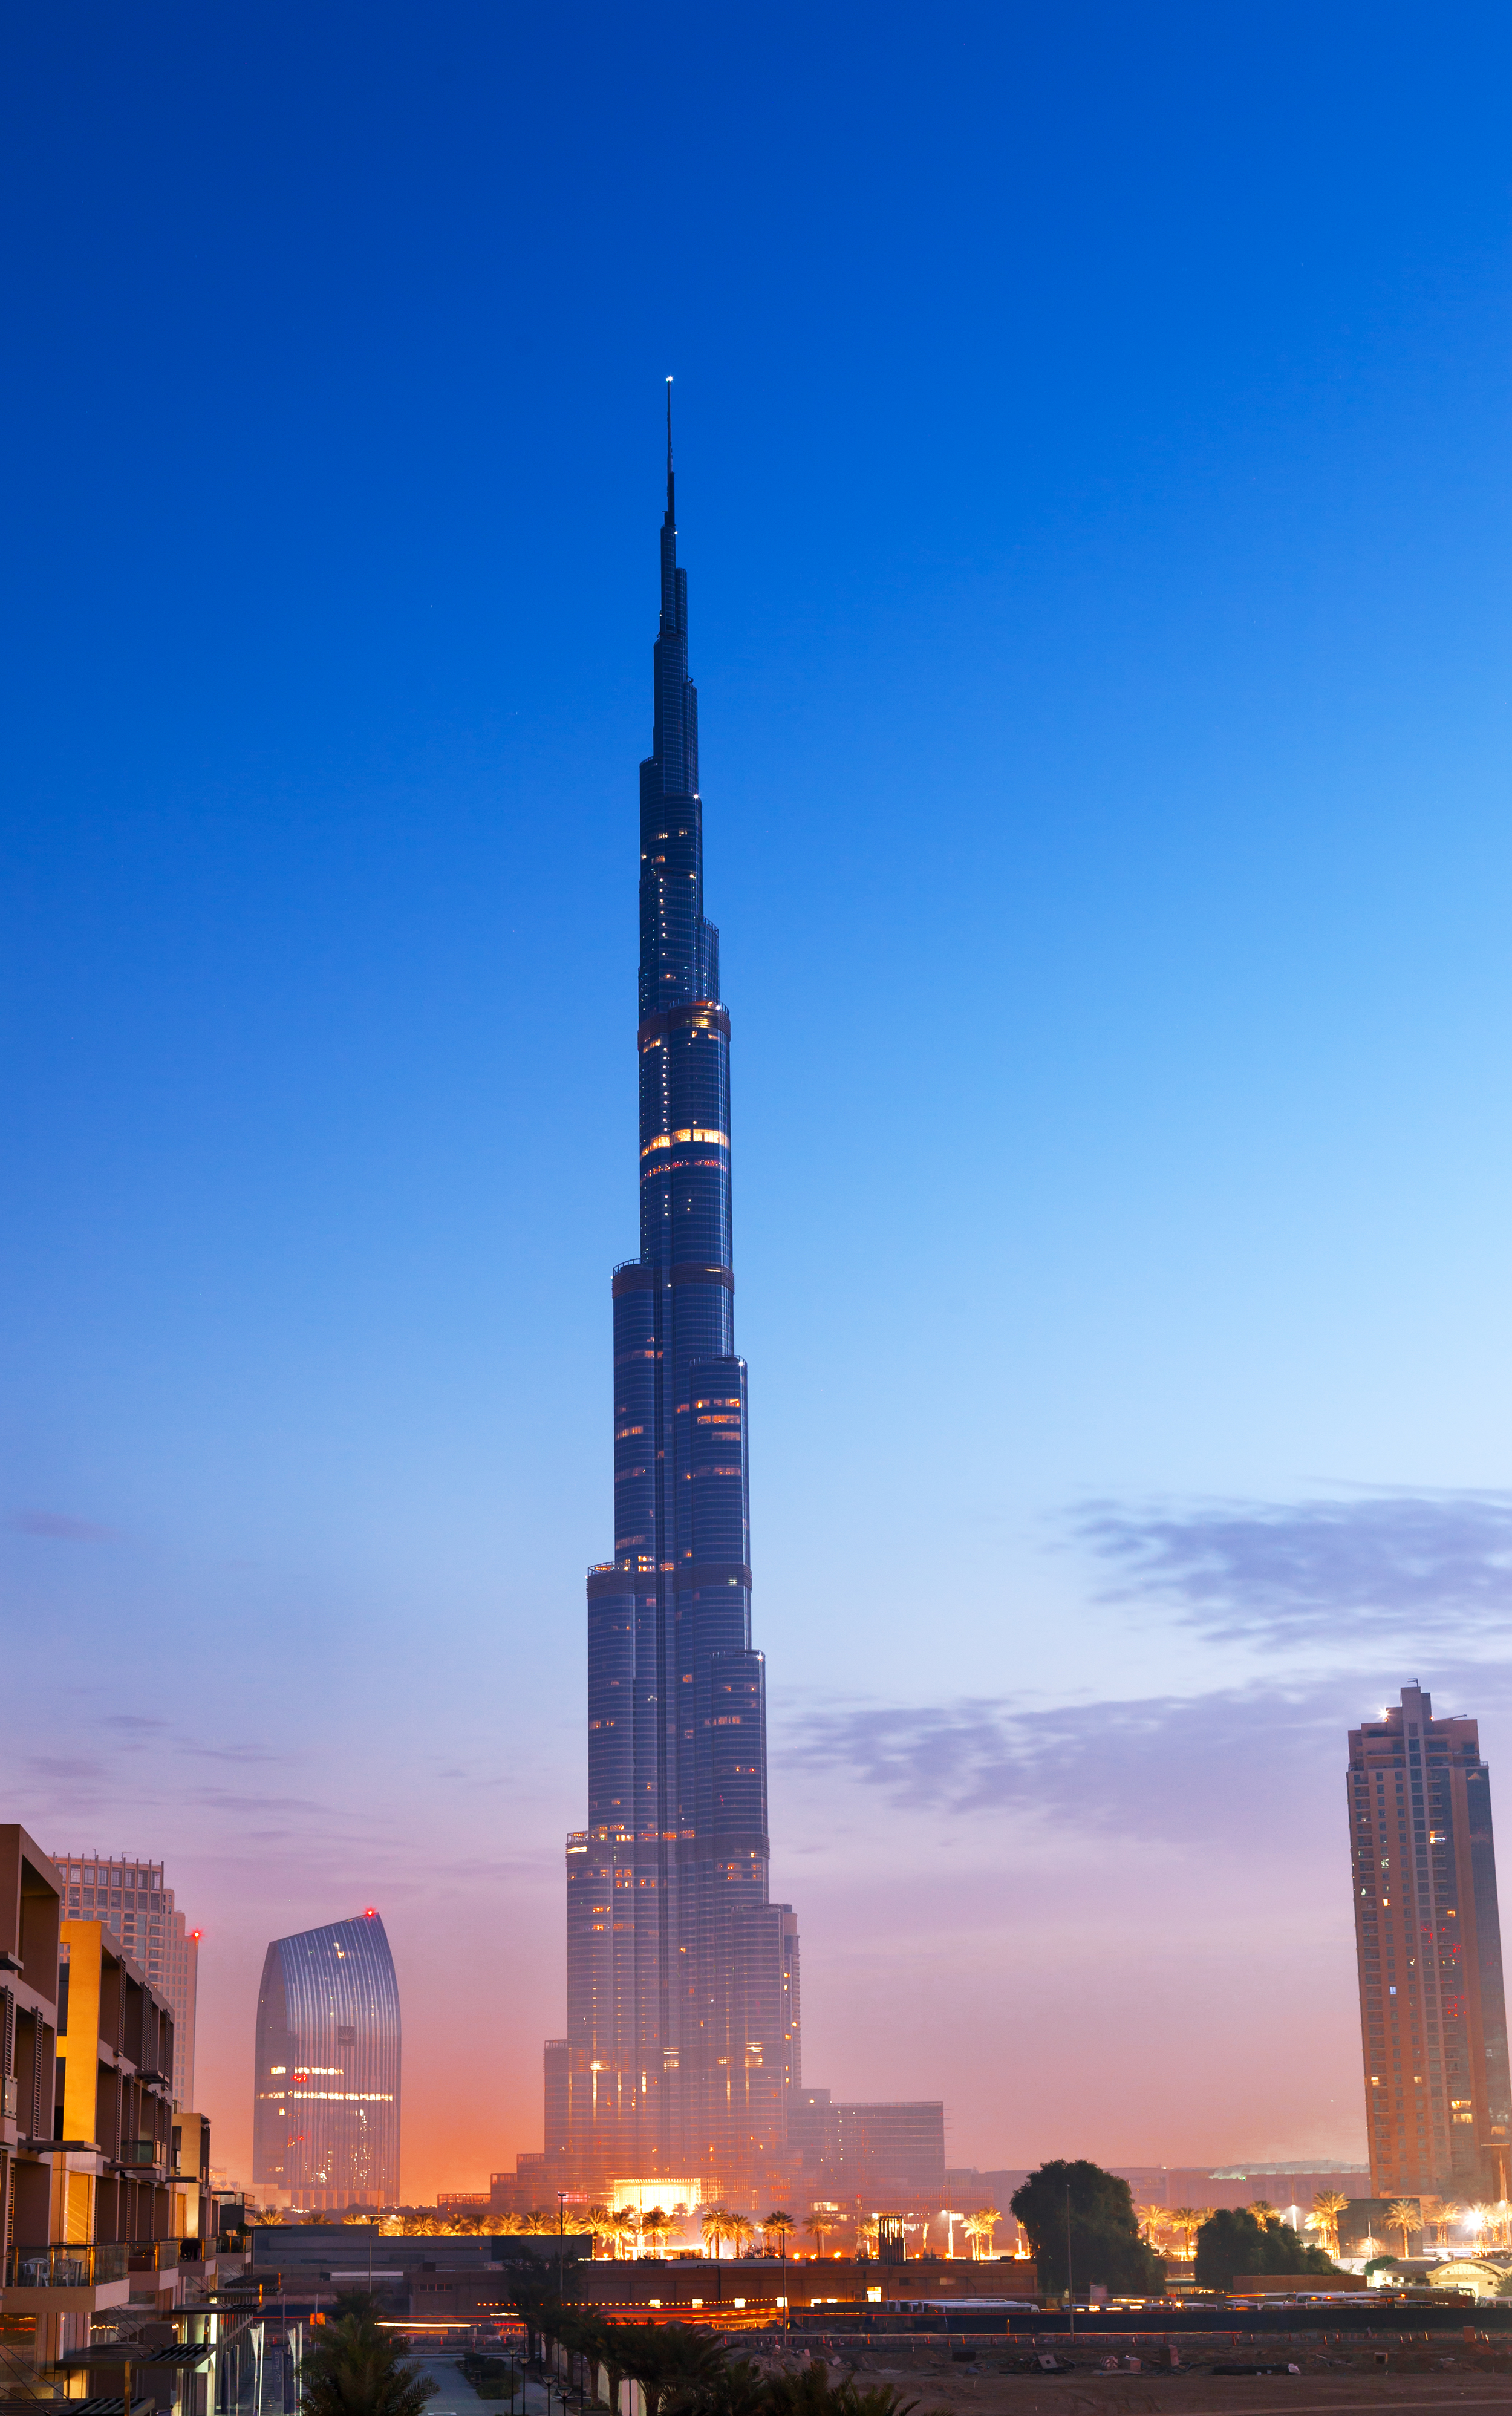 The way of the future? The Burj Khalifa in Dubai